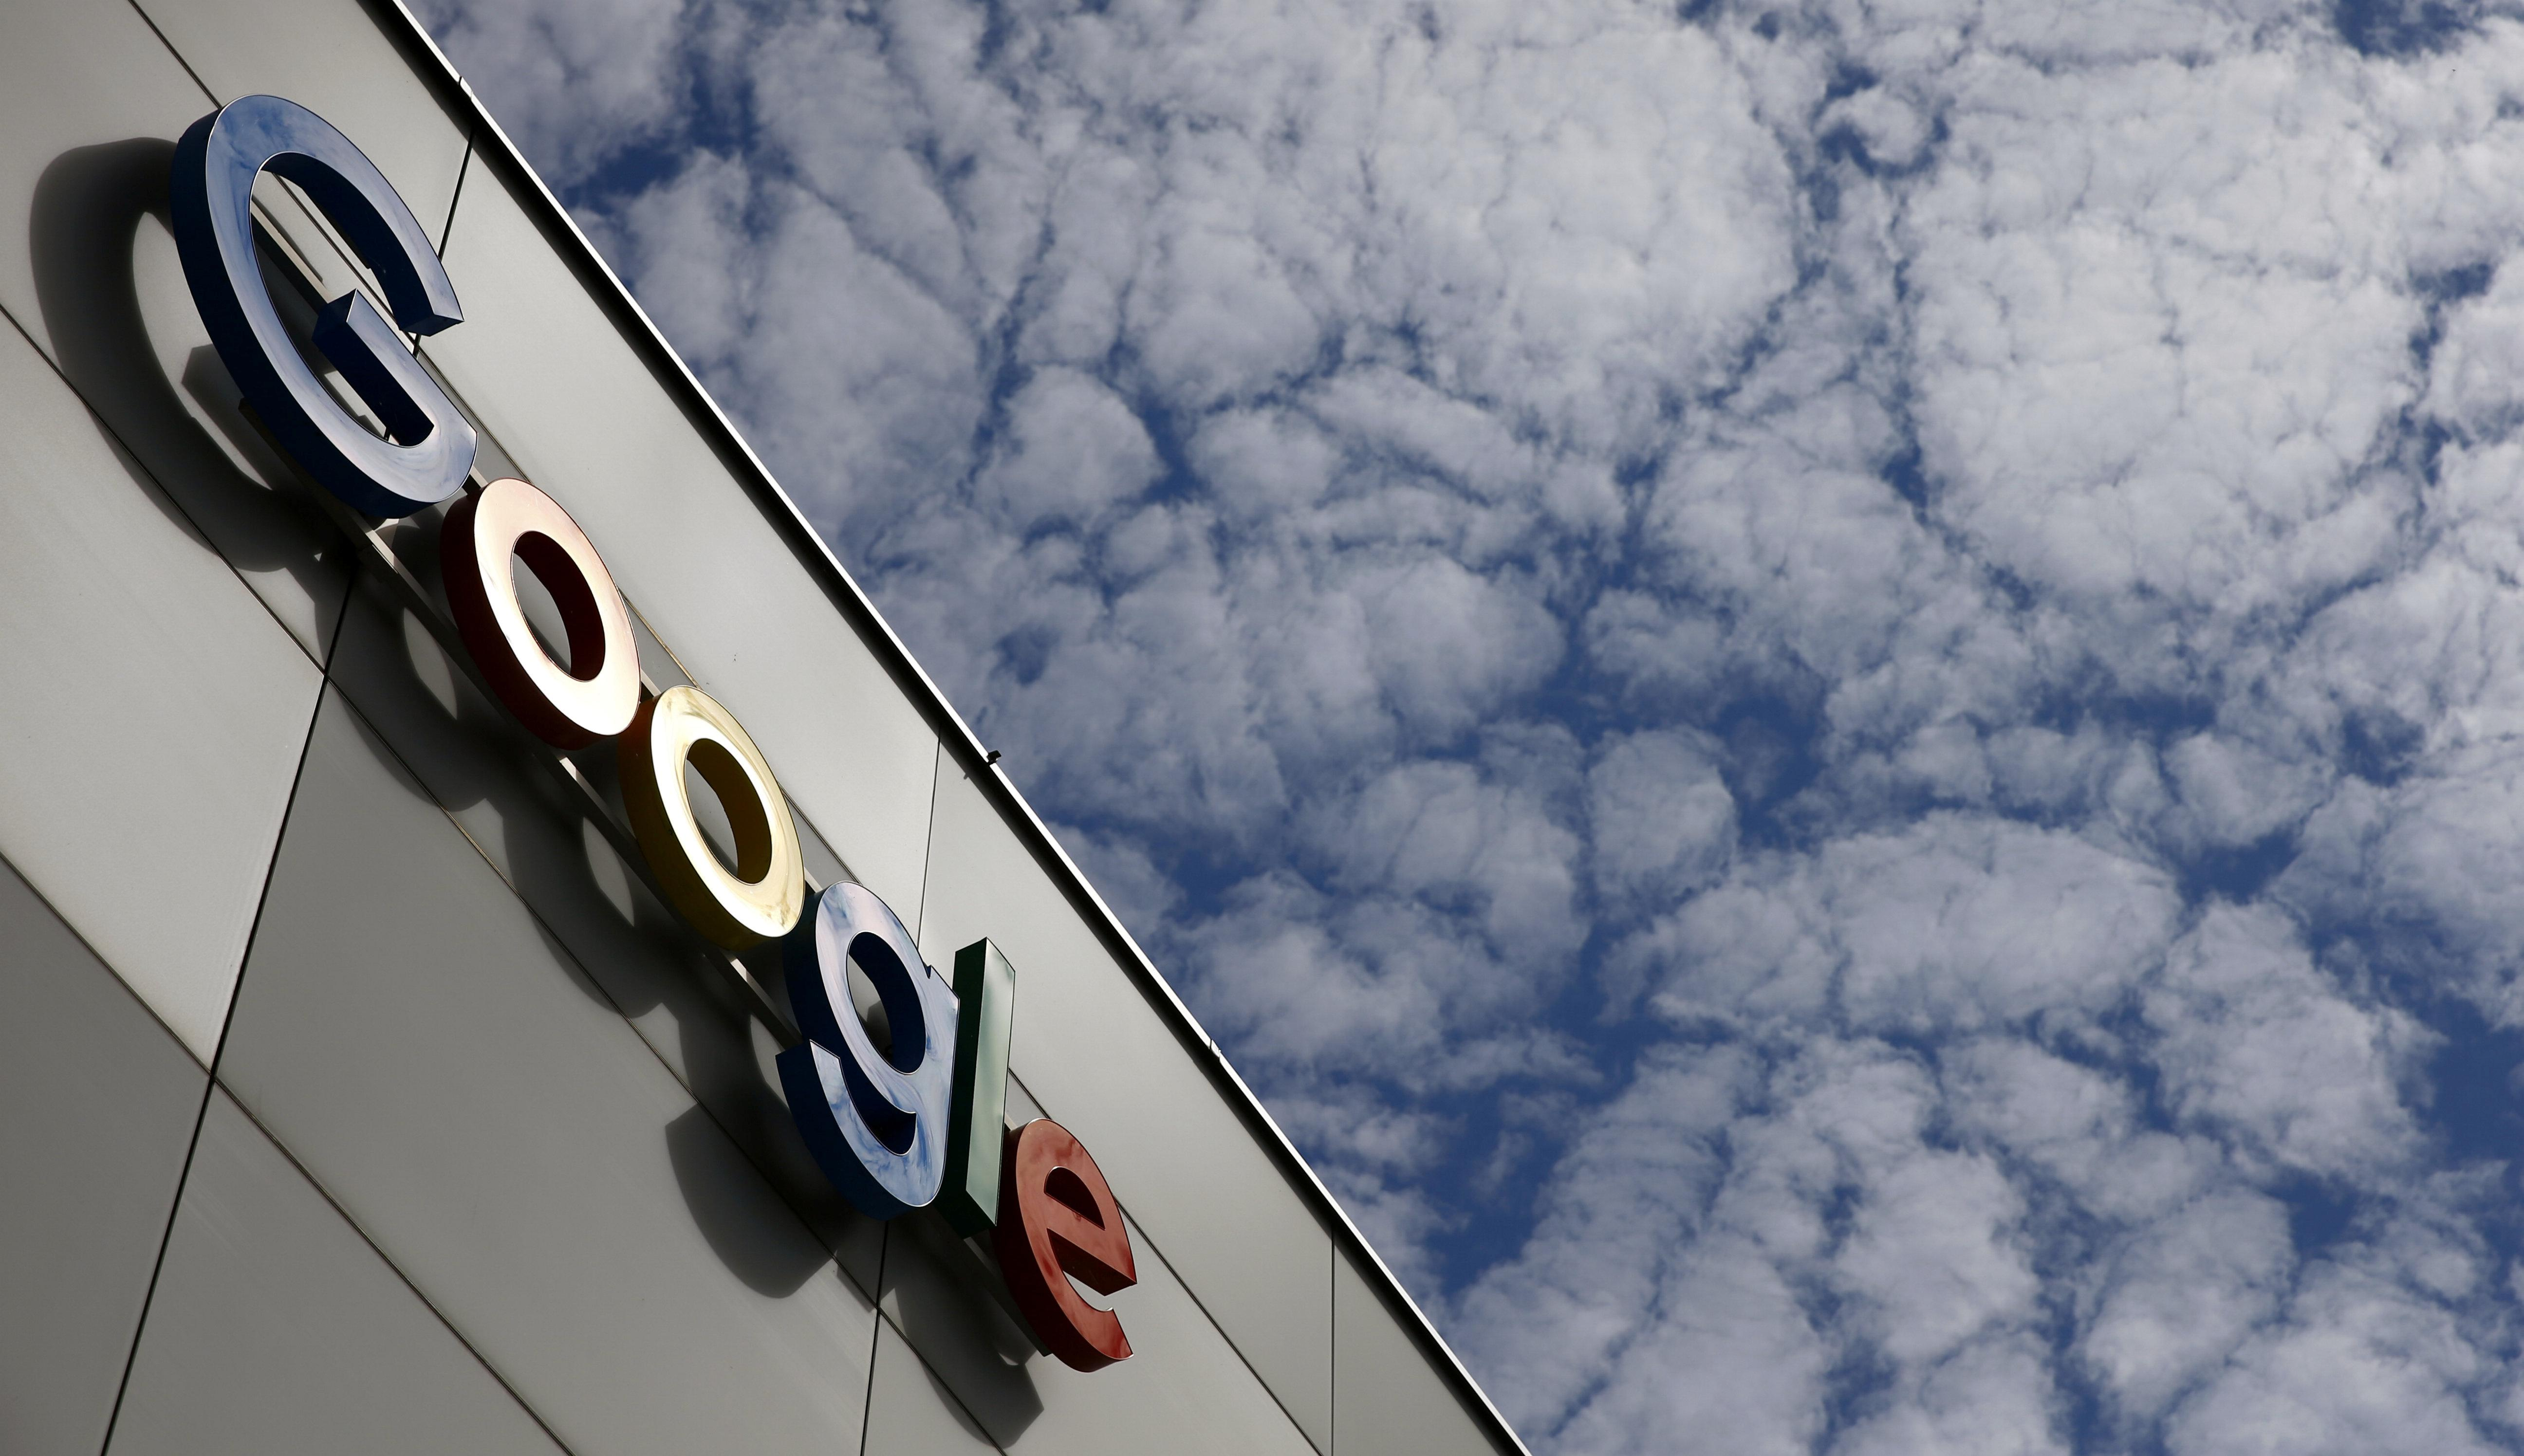 Google In Talks To Invest 4 Billion In Reliance S Digital Arm Bloomberg Aydintepemedya Com